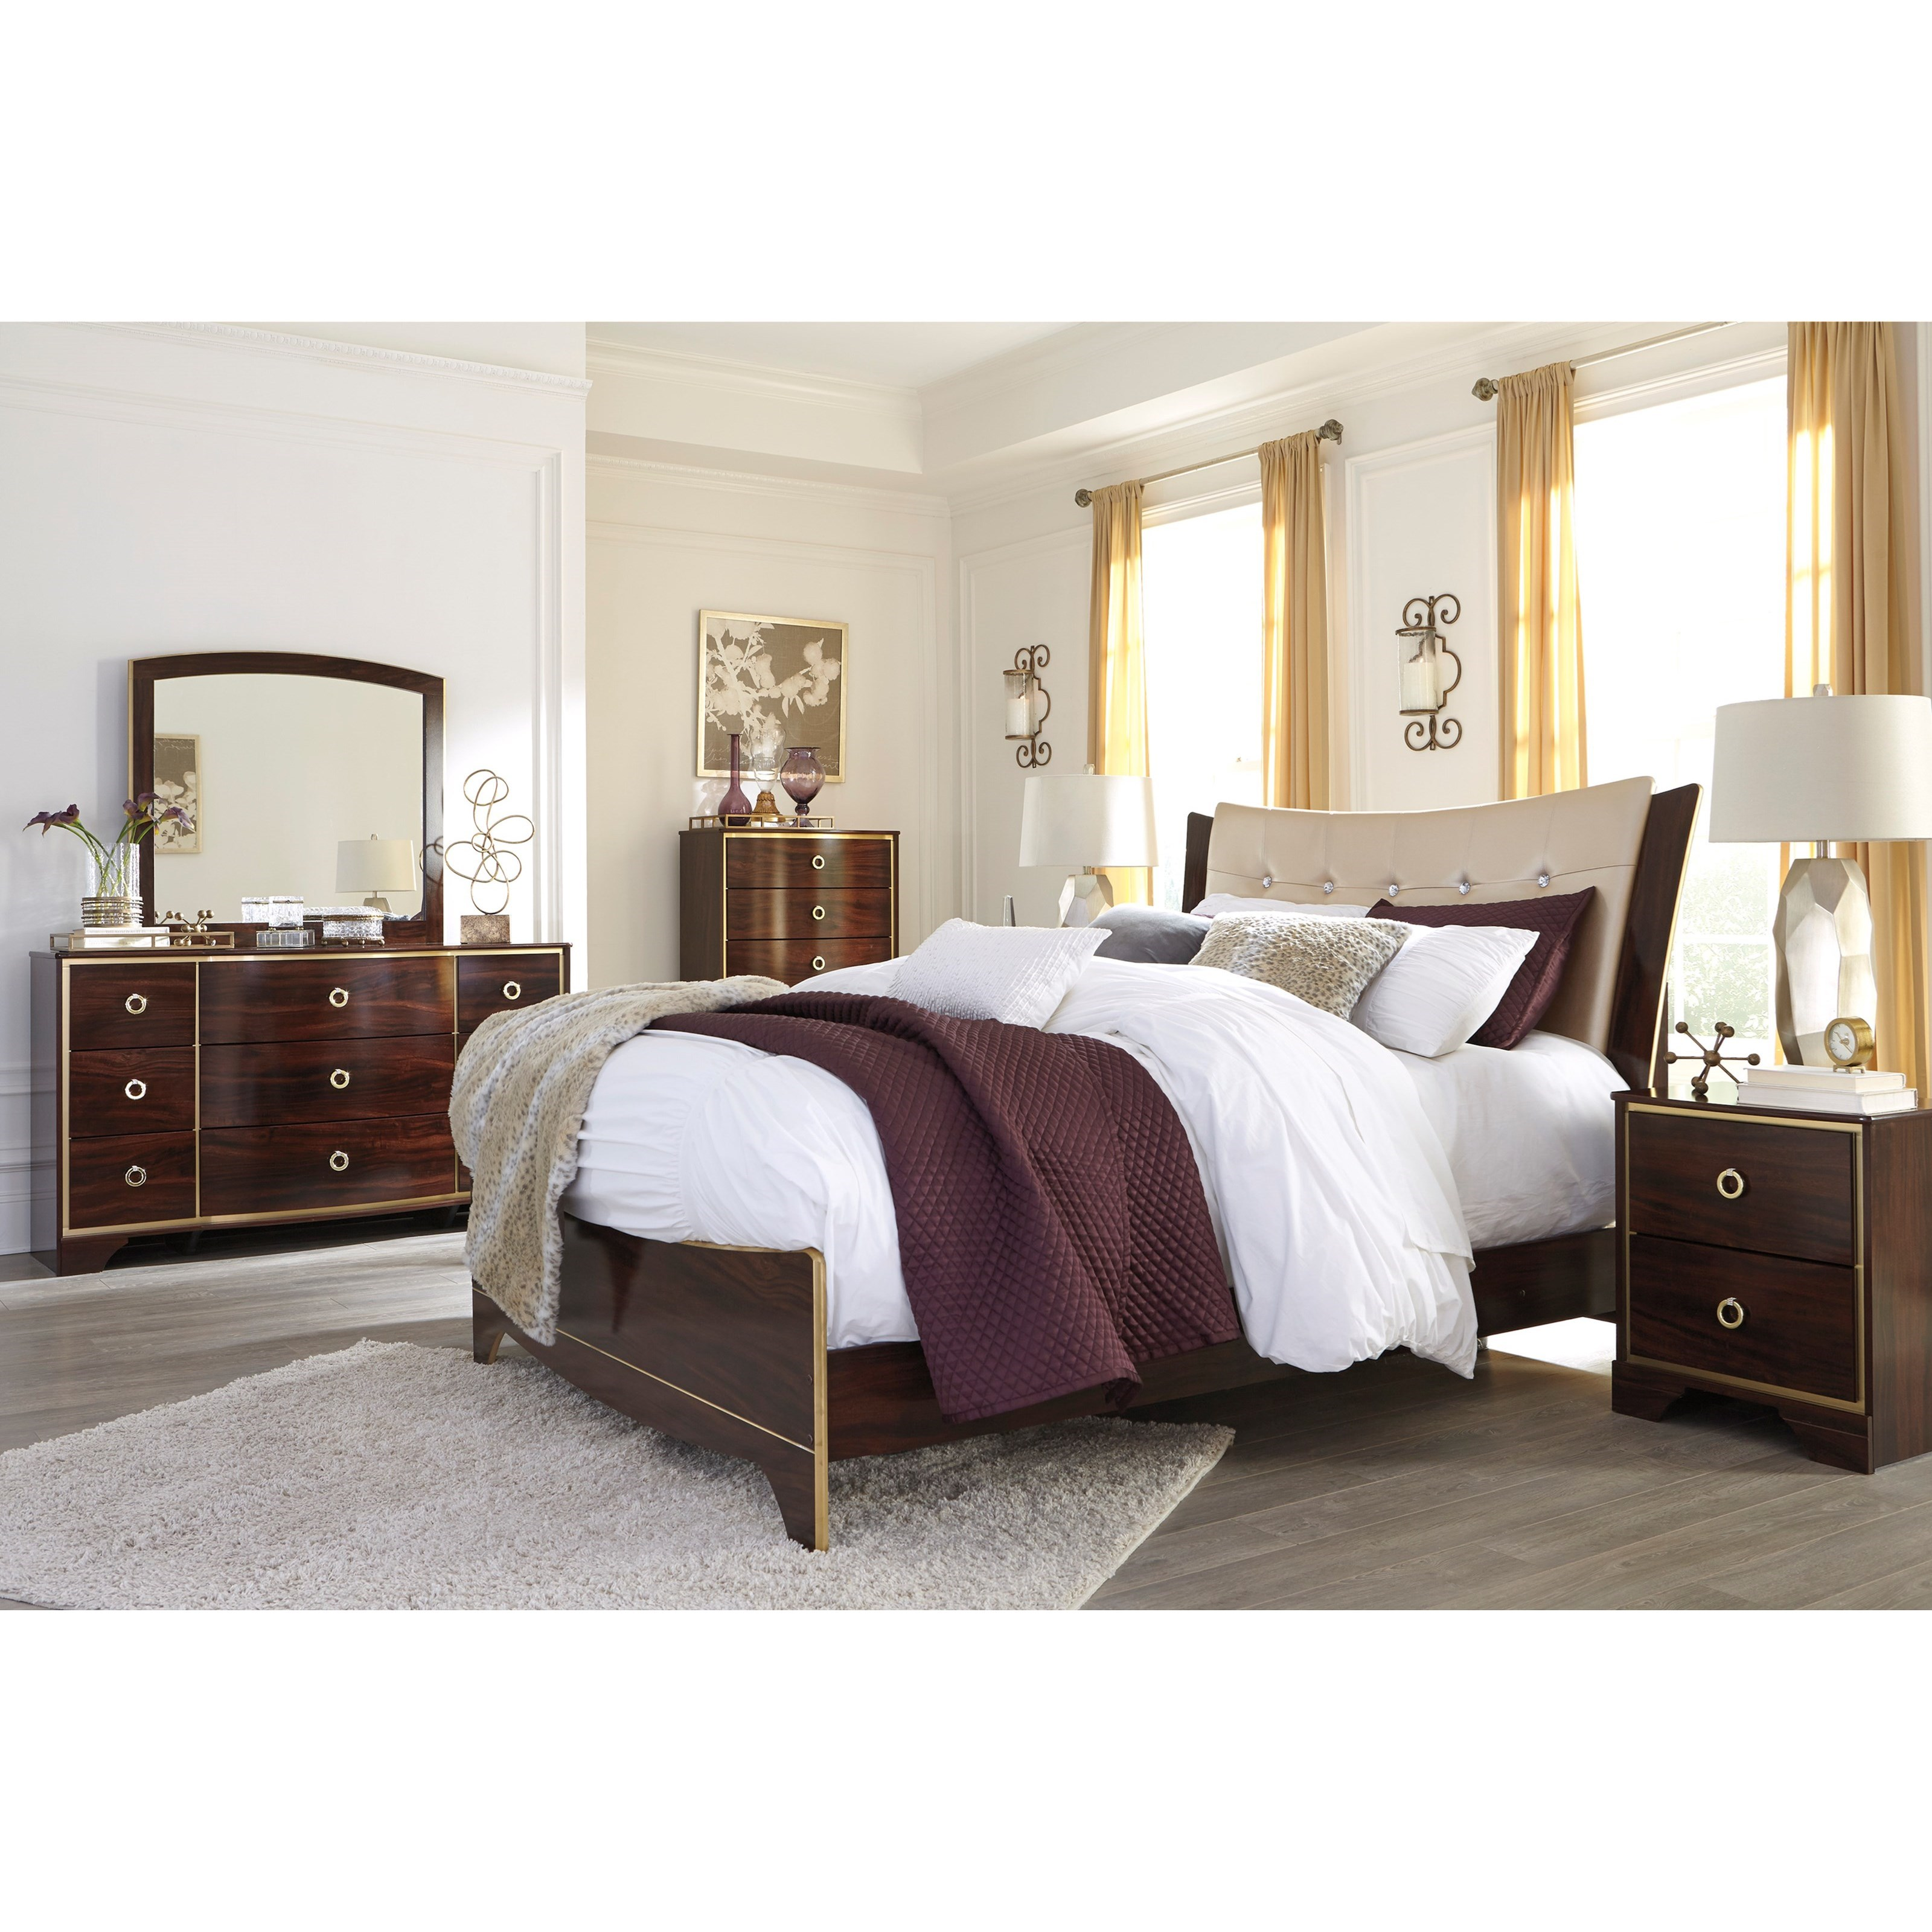 Signature Design By Ashley Lenmara Queen Bedroom Group Del Sol Furniture Bedroom Group